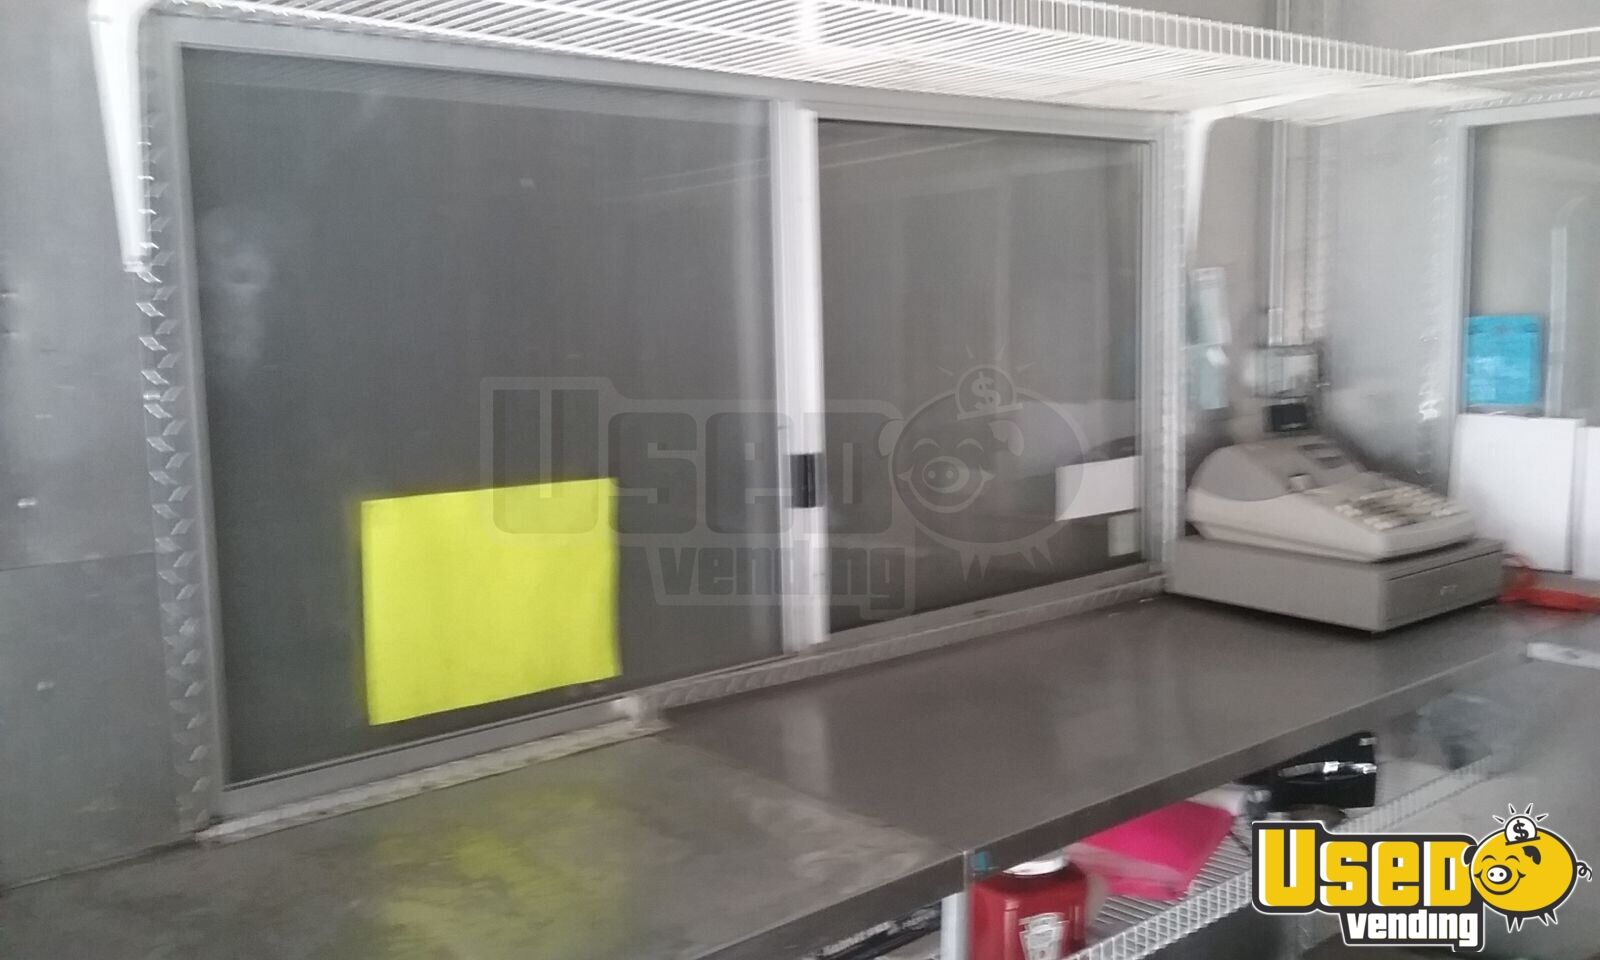 2011 Concession Trailer Stainless Steel Wall Covers Washington for Sale - 3